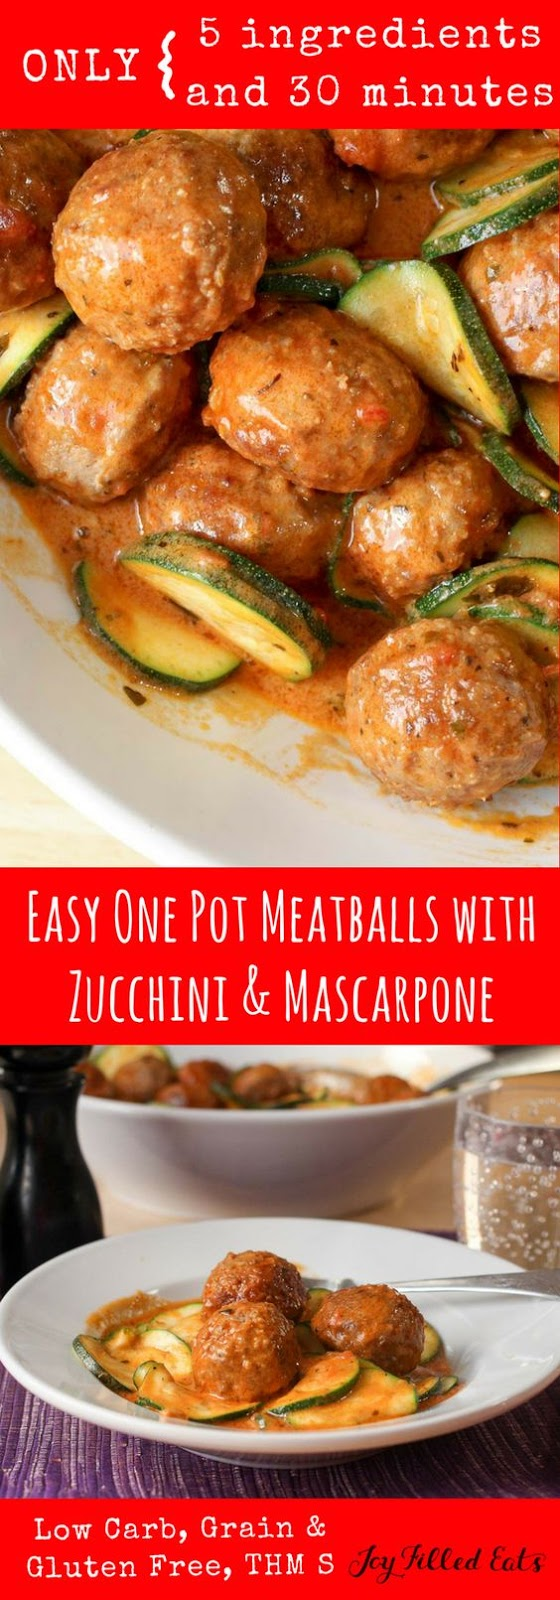 Easy Meatballs with Zucchini & Mascarpone